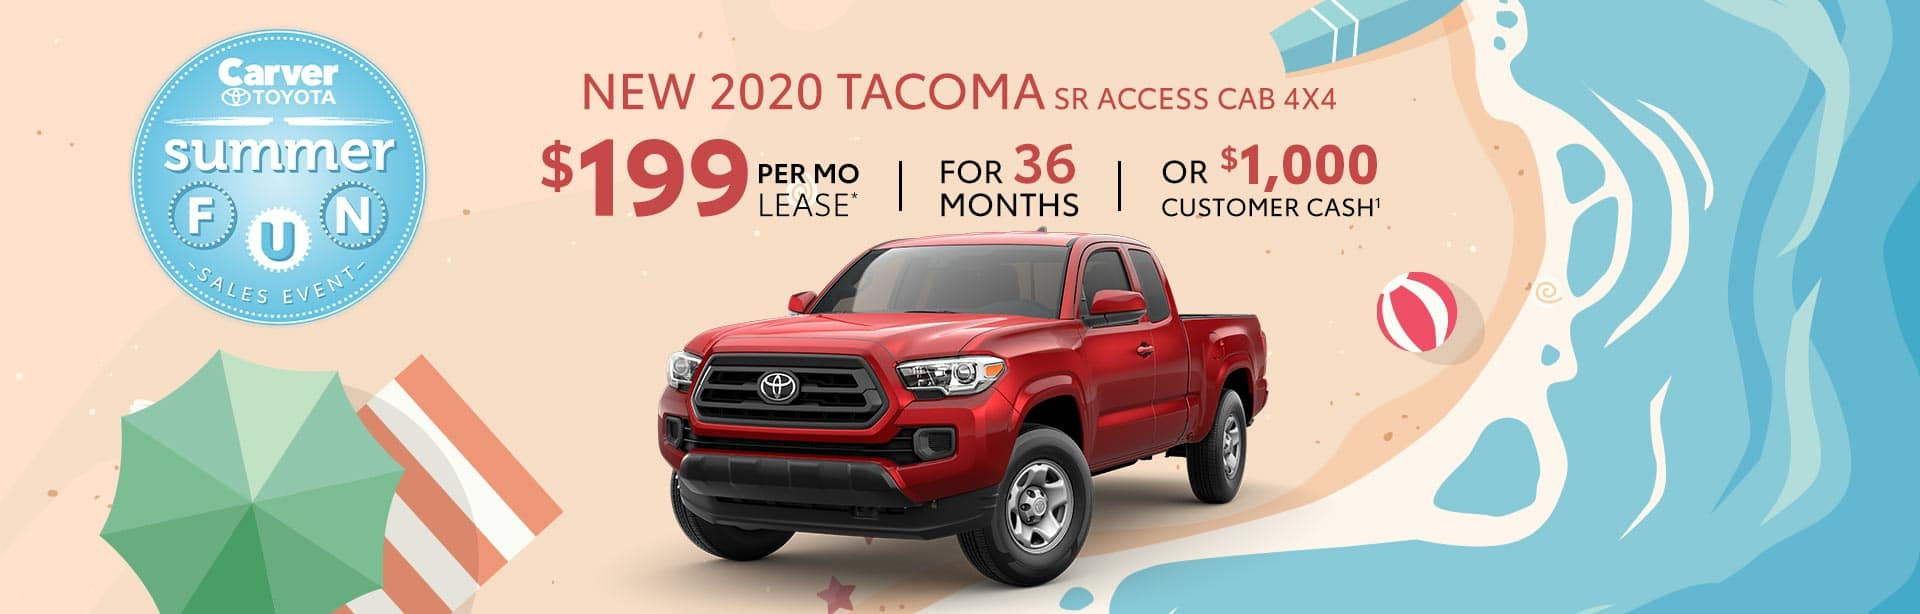 Lease a New Tacoma for $199 a month near Franklin, Indiana